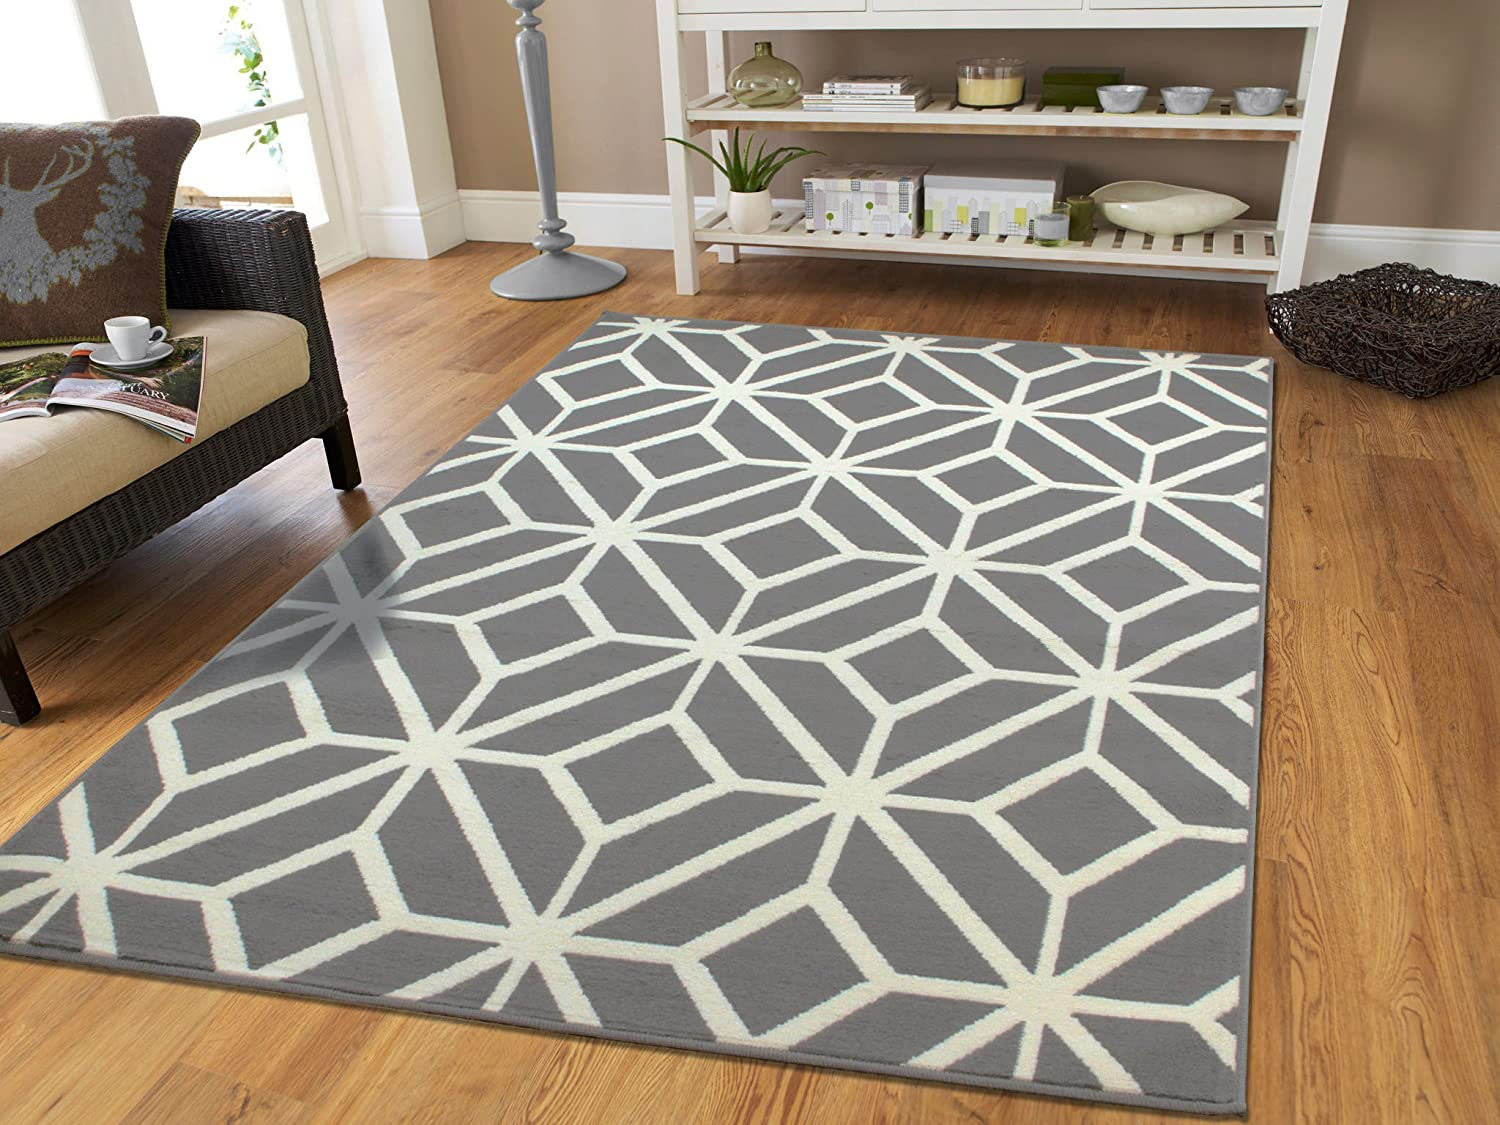 Amazon Contemporary Rugs For Living Room Grey And White Moroccan Trellis Area Rug Carpet 5 X 7 Feet Gray Kitchen Dining